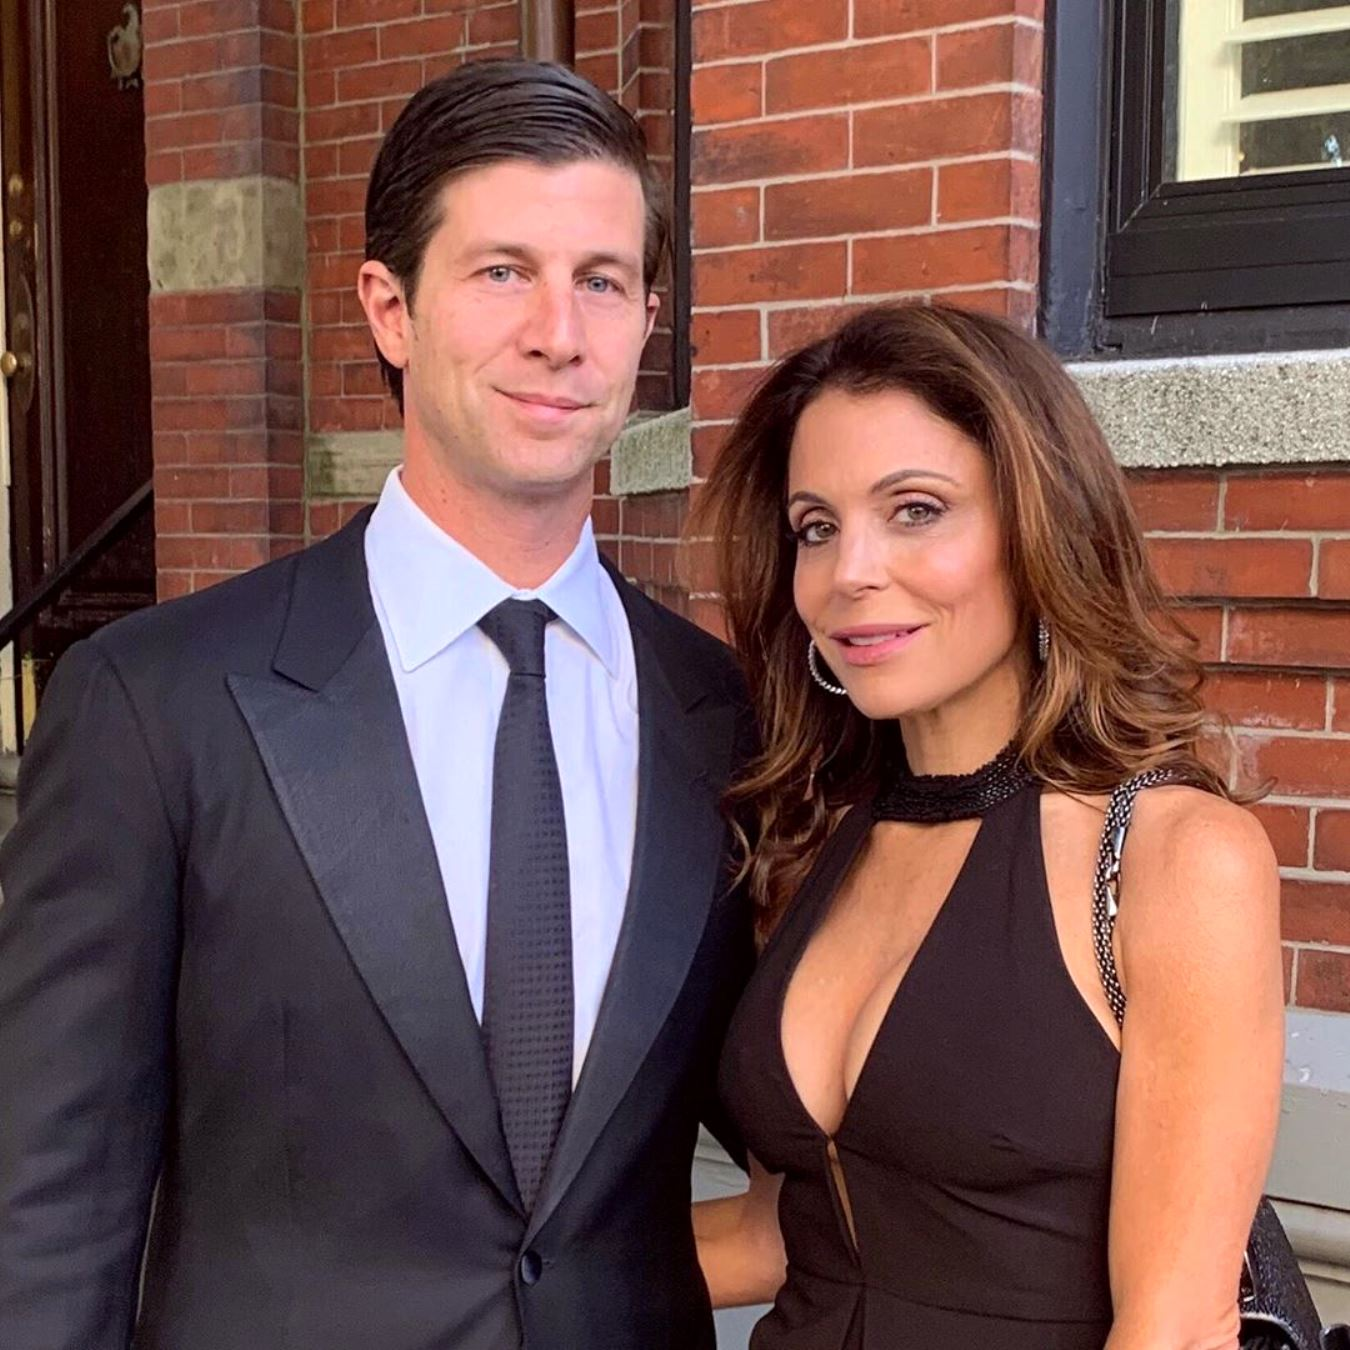 Bethenny Frankel and Boyfriend Paul Bernon Break Up After Two Years Of Dating, Timeline of Ex RHONY Star's Split Revealed Plus What She Said Just Weeks Ago About Romance